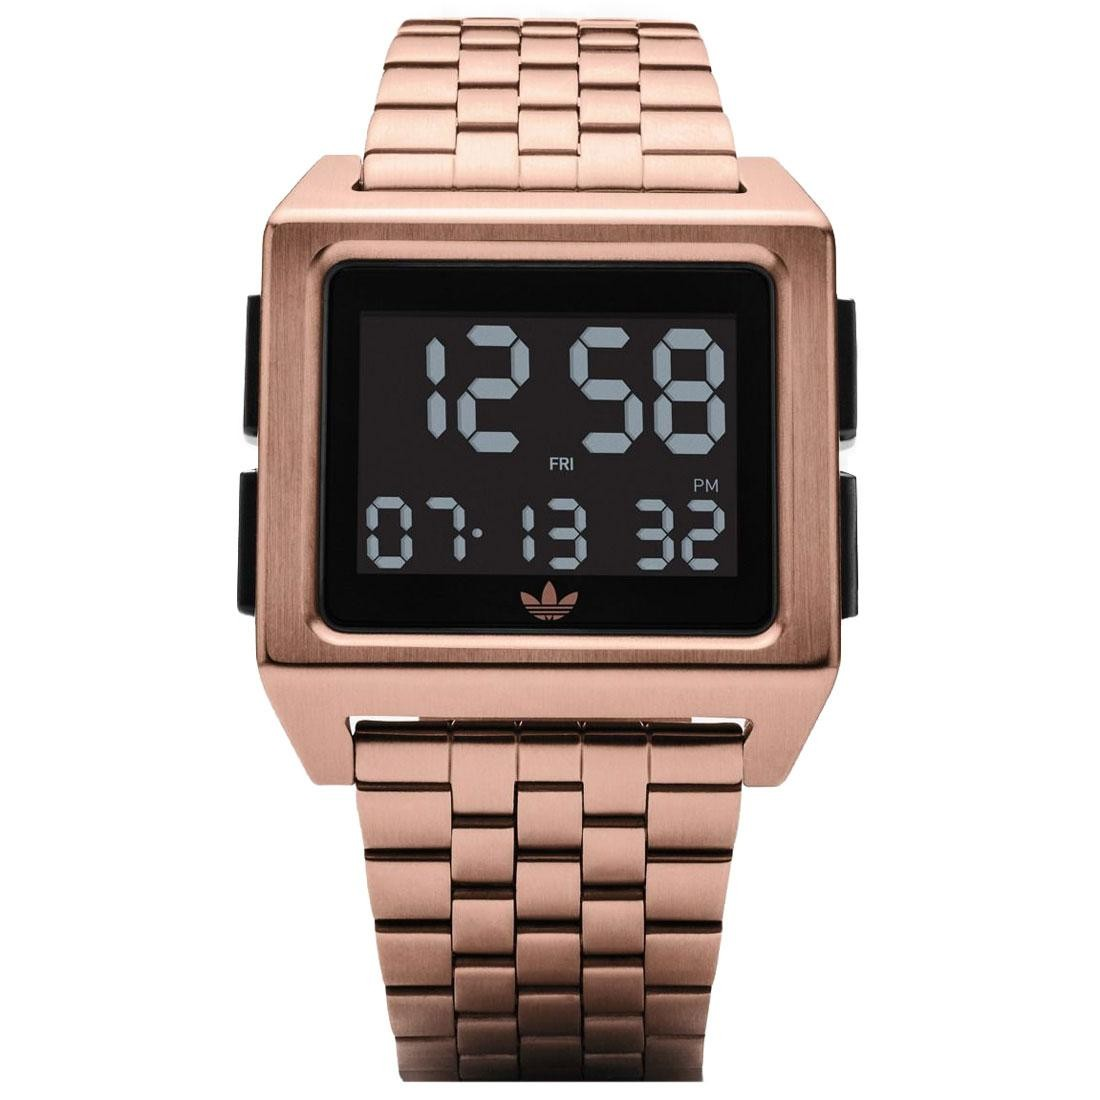 Adidas Archive M1 Watch (gold / rose gold / black)